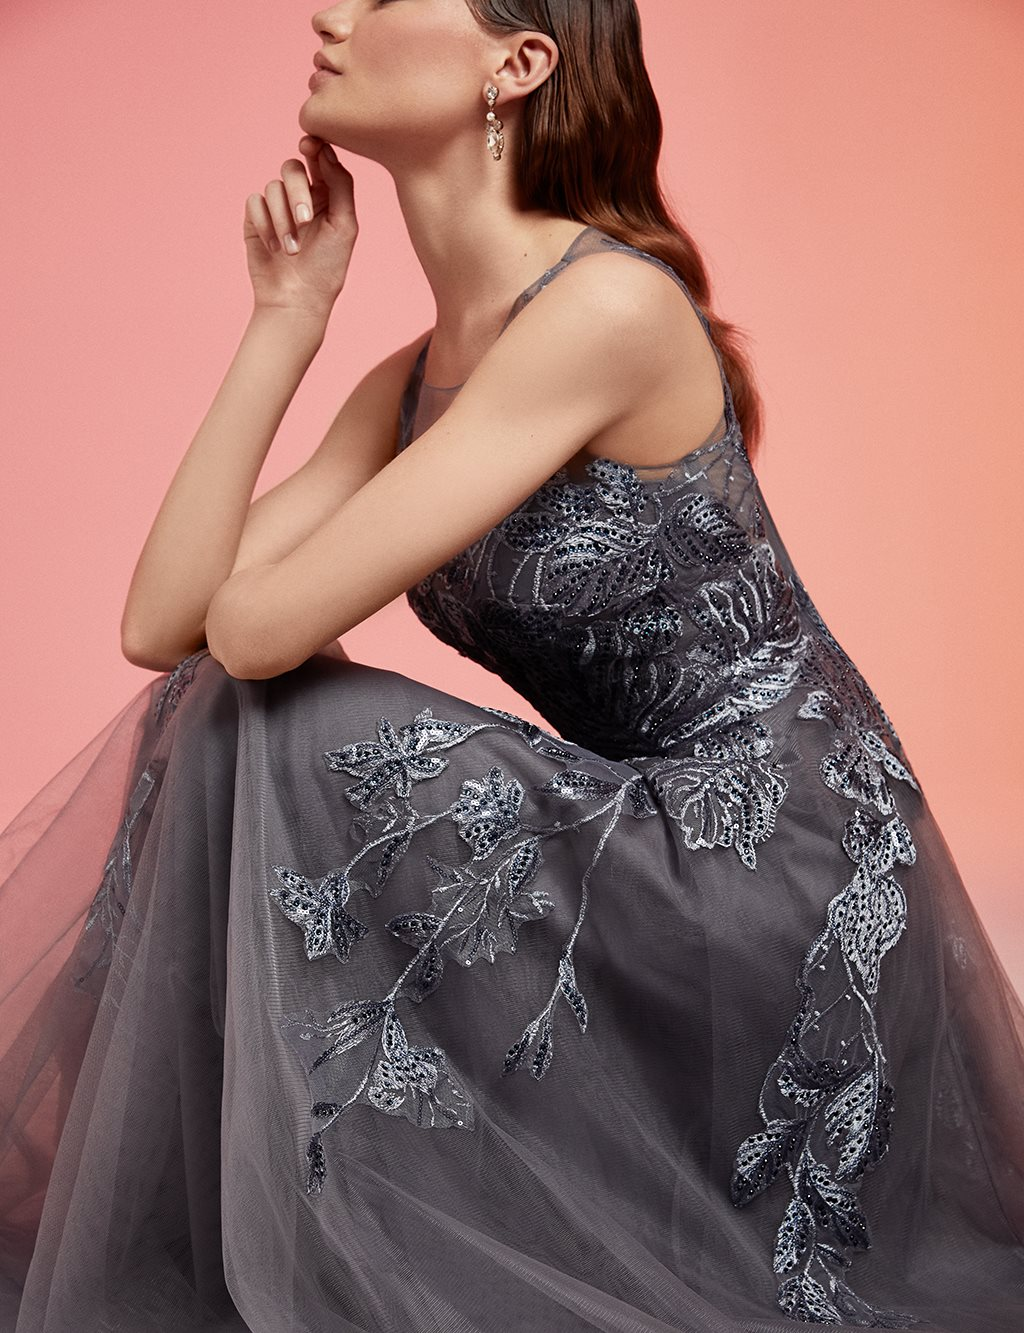 TIARA Collar Detailed Chiffon Evening Gown B20 26171